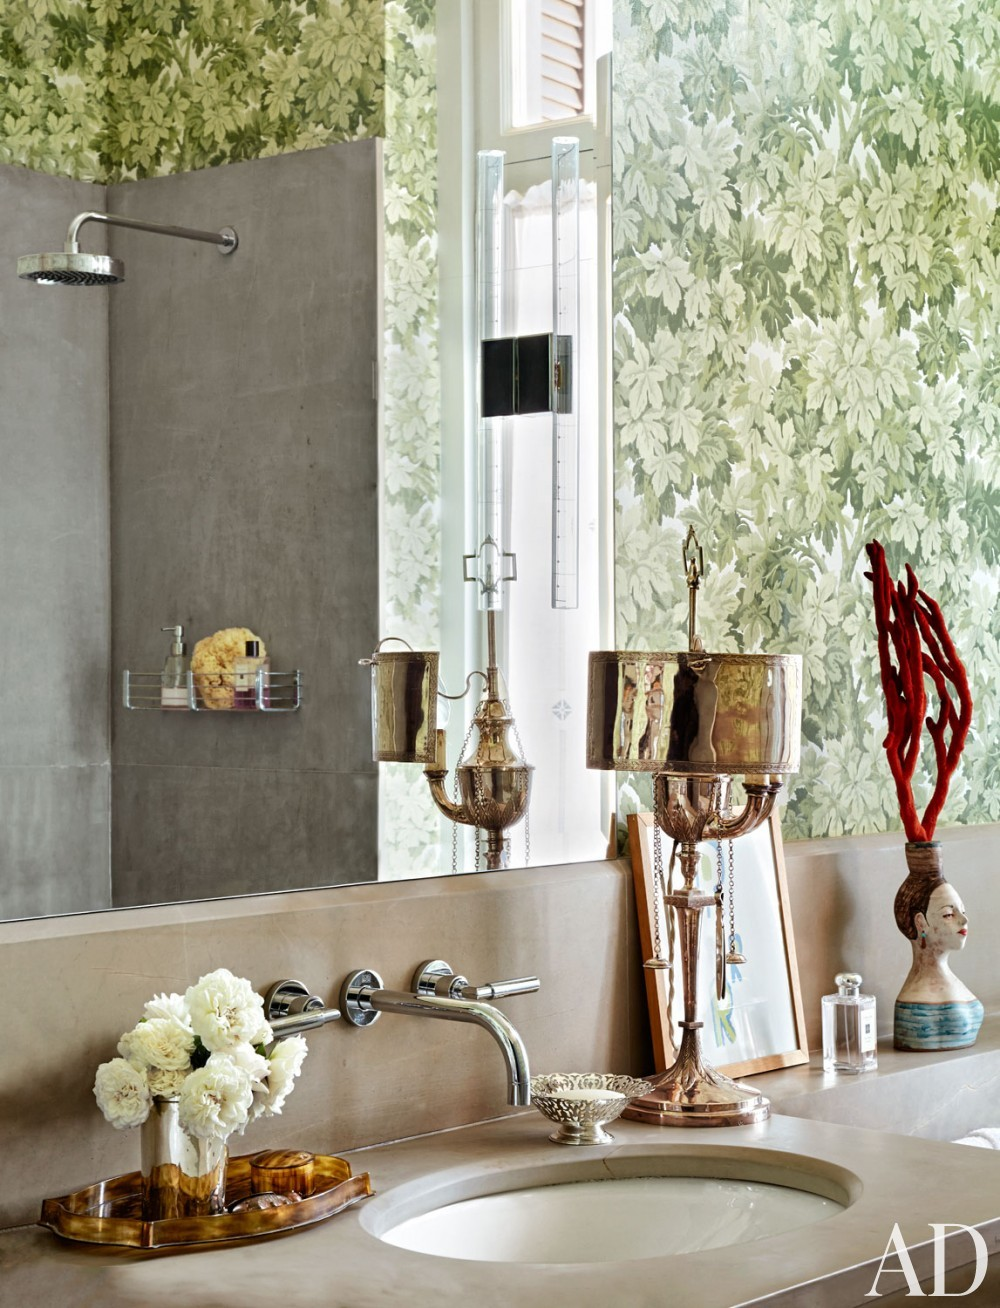 Modern Bathroom by Allegra Hicks and Paolo Cattaneo in Naples, Italy